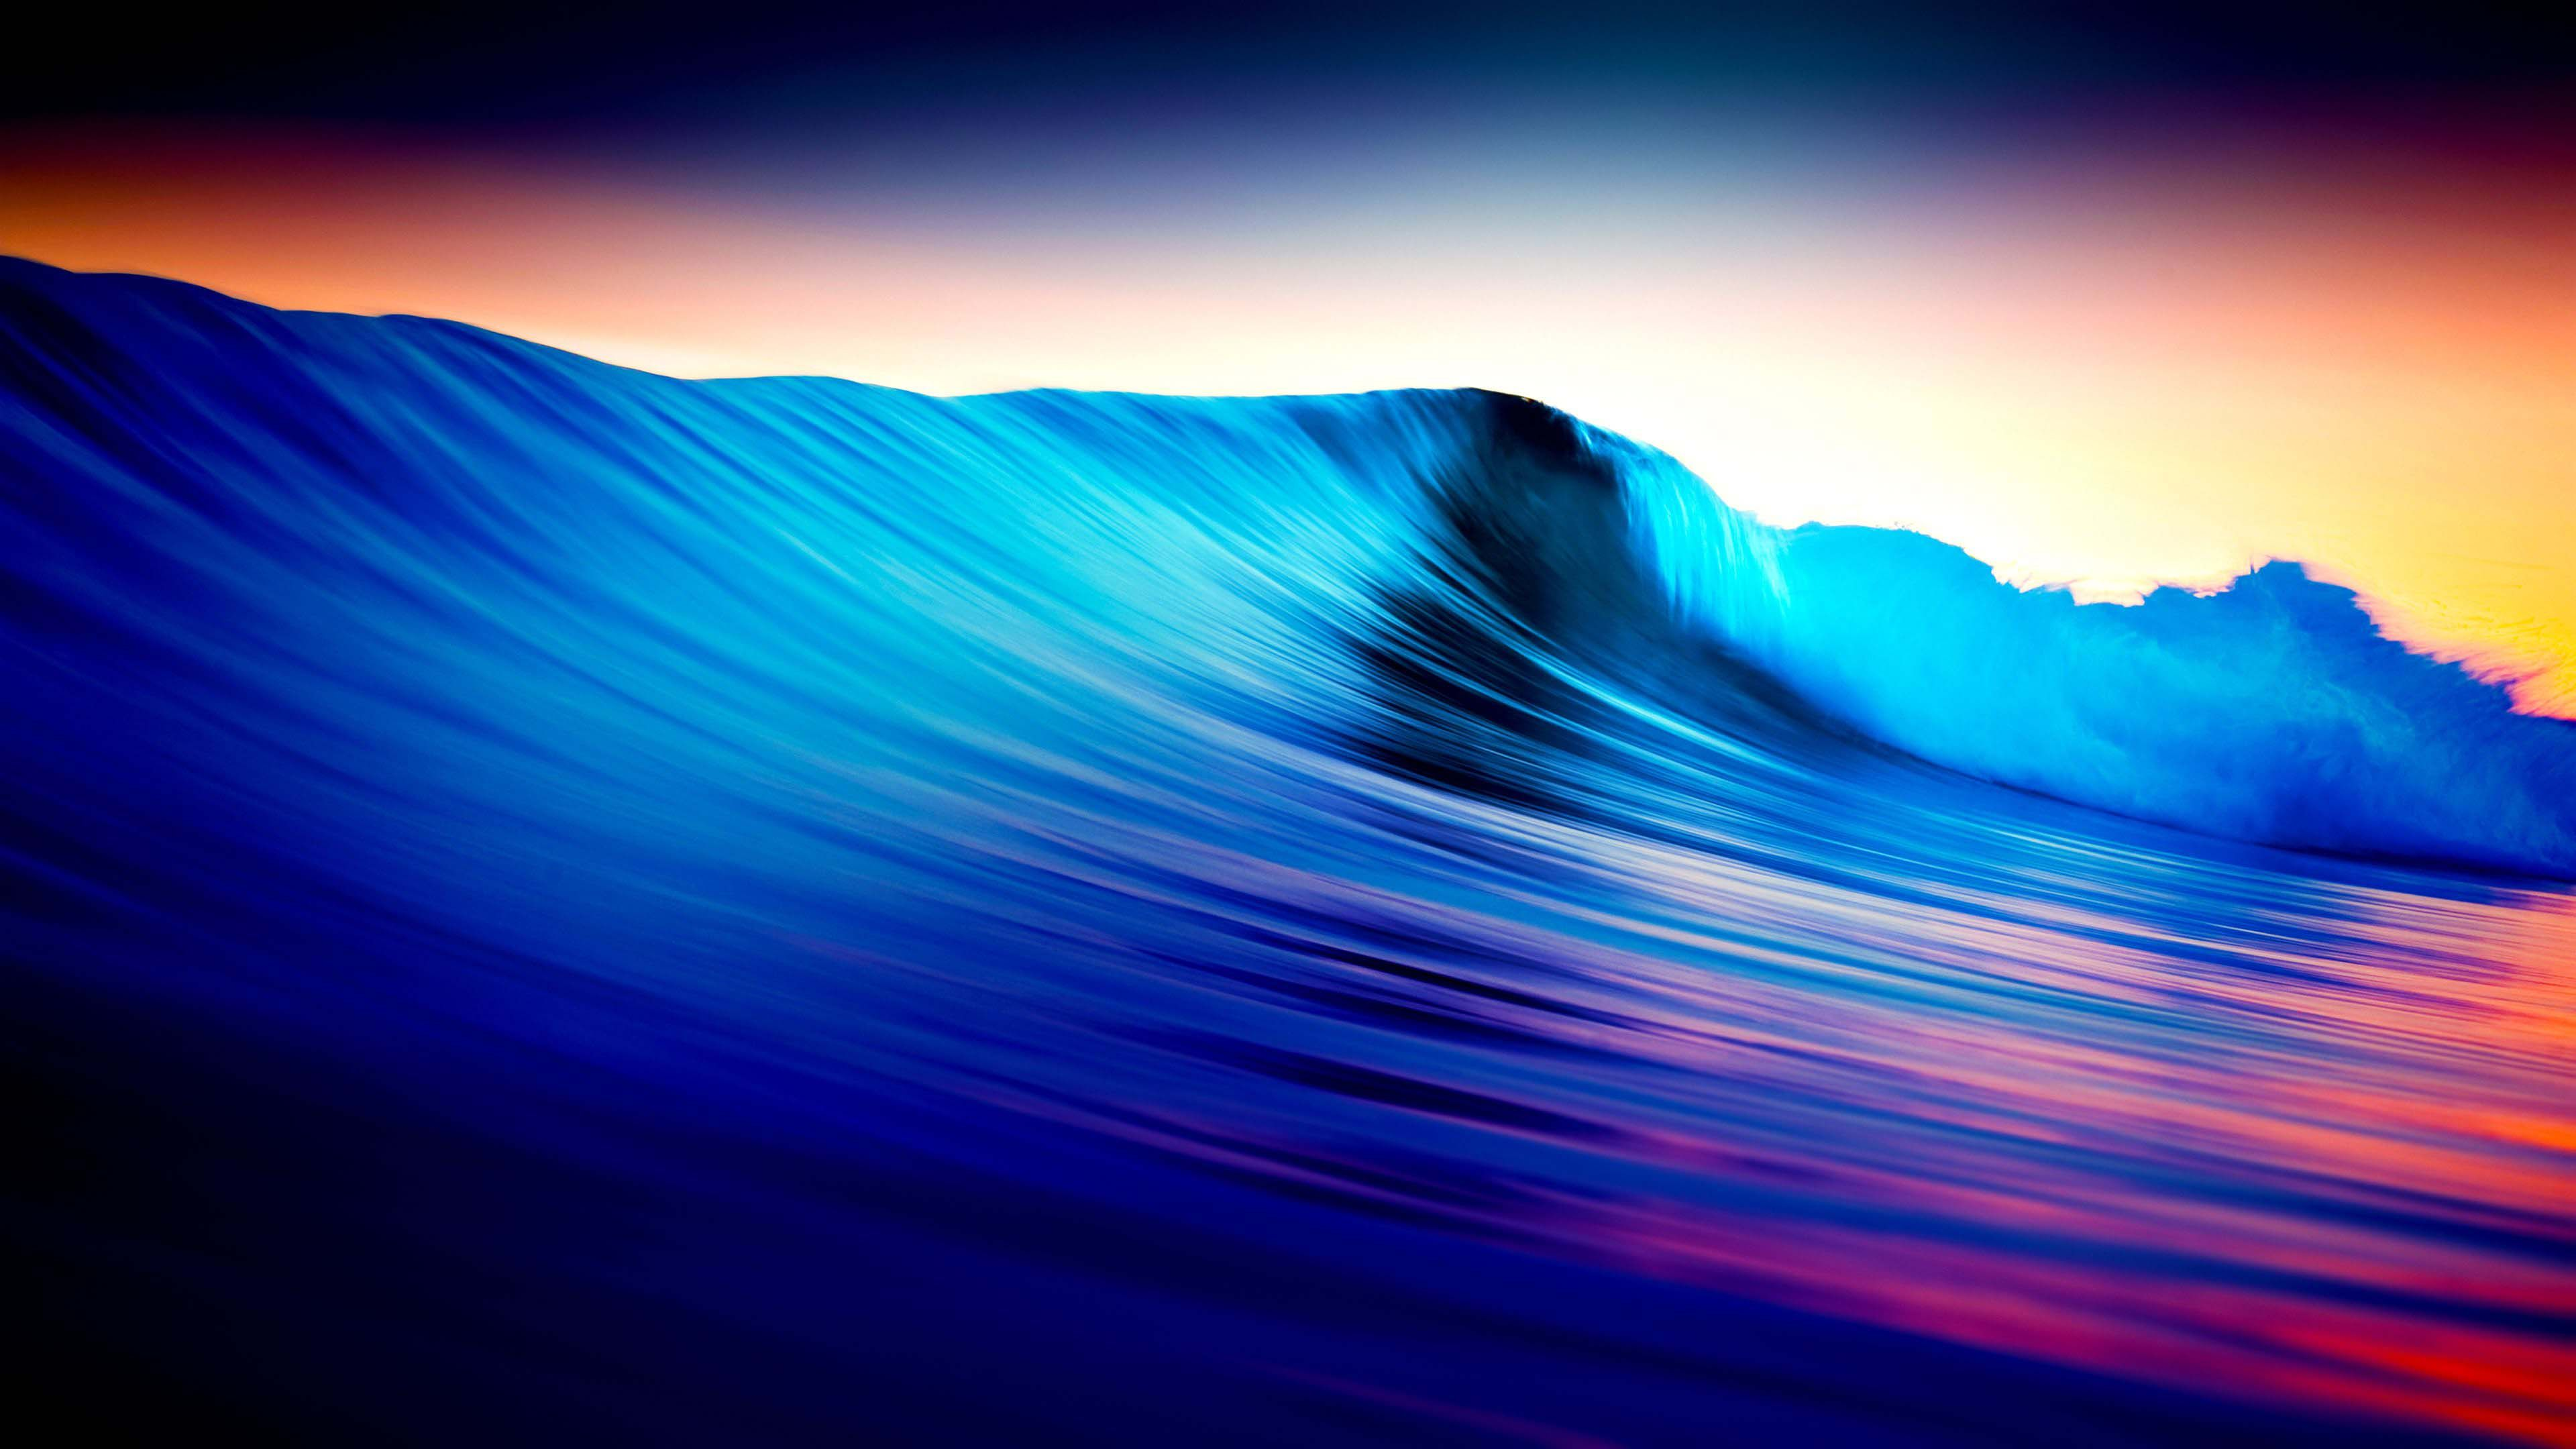 Hd Wallpapers Zedge Waves Wallpaper Nature Wallpaper 3840x2160 Wallpaper